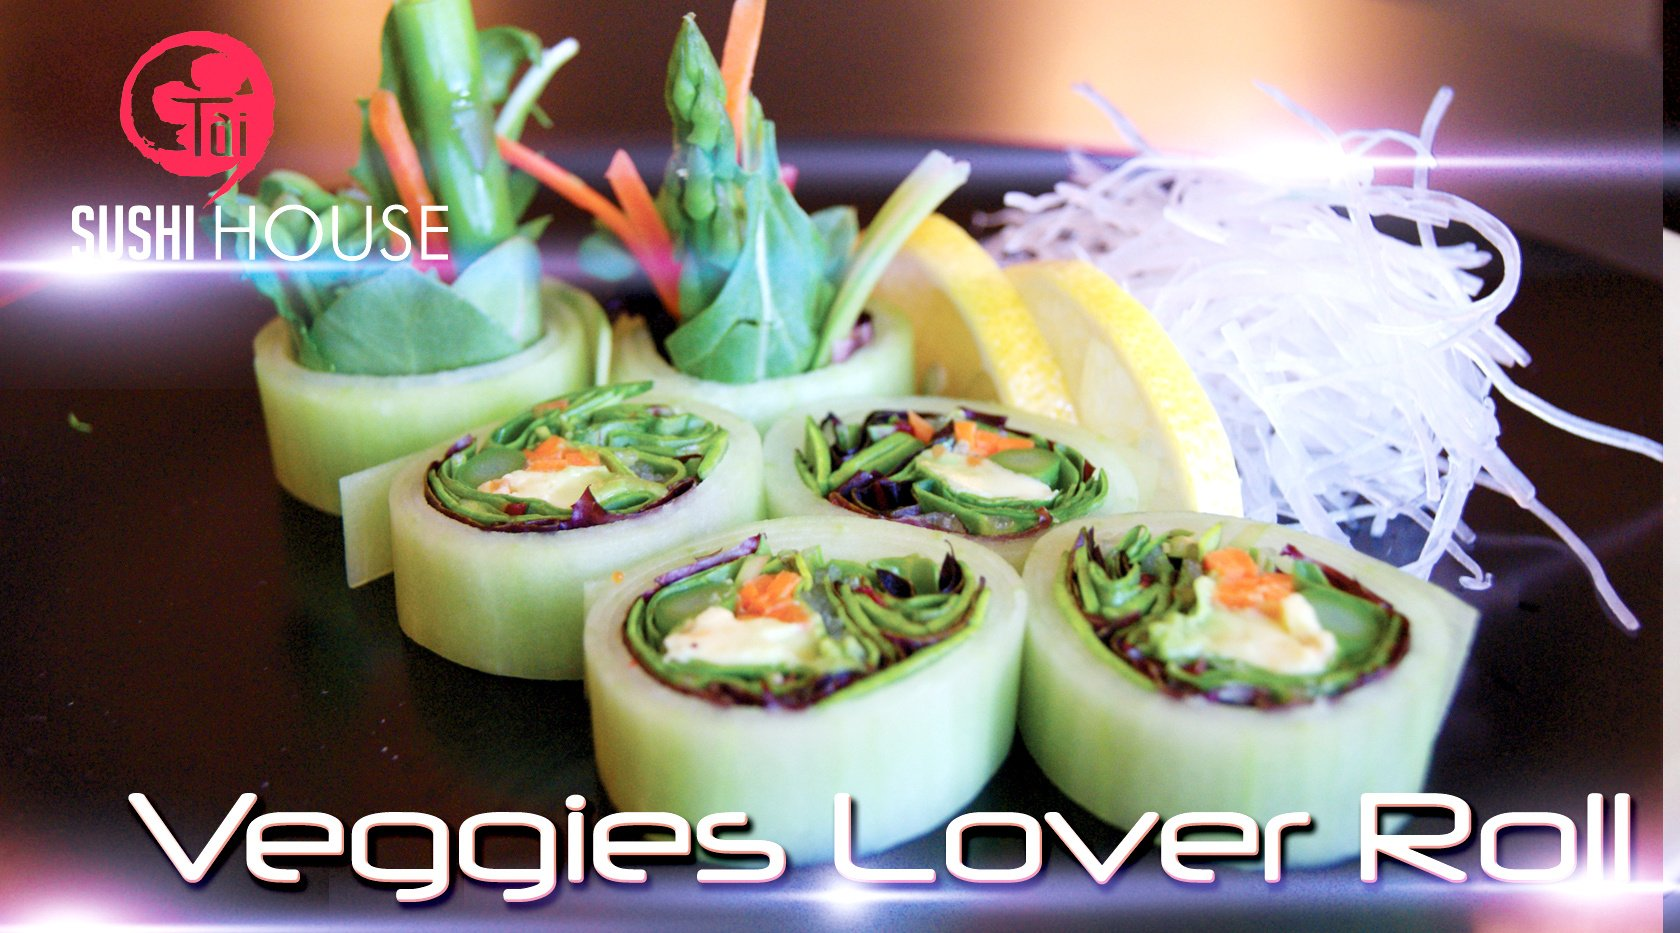 Veggies Lover Roll